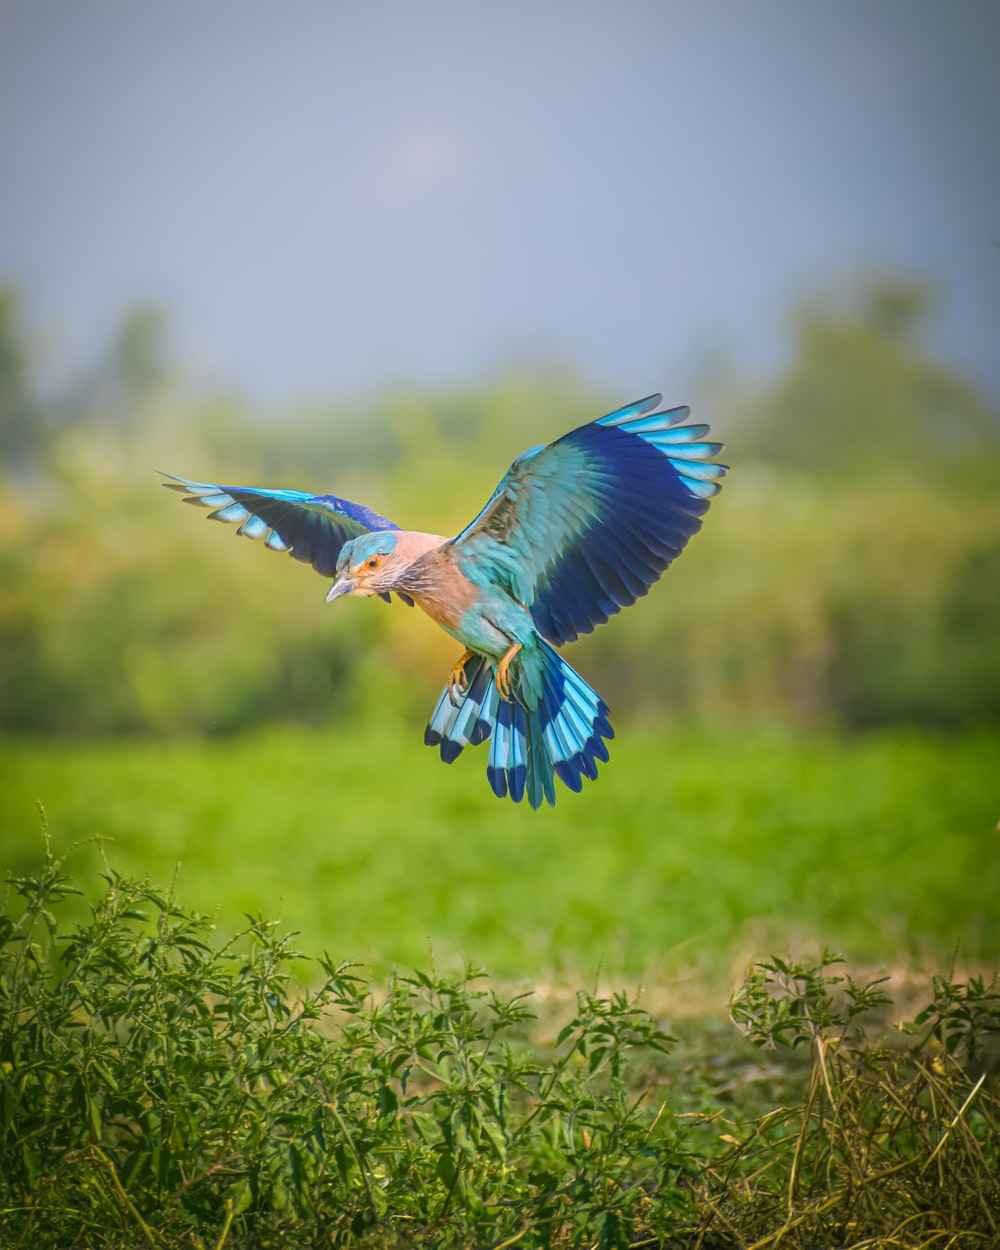 blue and white bird flying on green grass during daytime